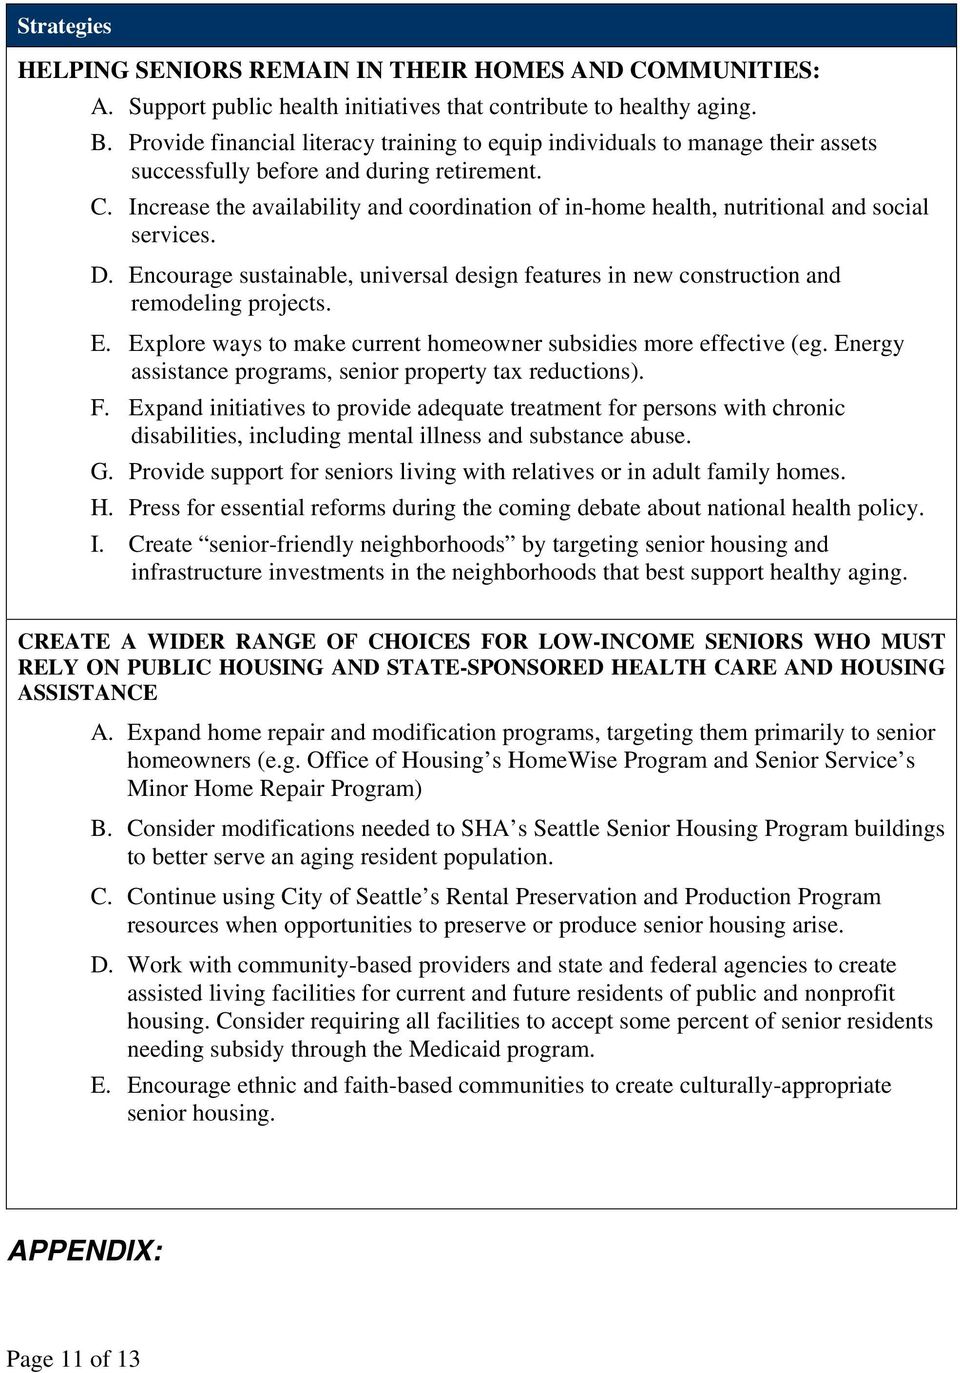 Increase the availability and coordination of in-home health, nutritional and social services. D. Encourage sustainable, universal design features in new construction and remodeling projects. E. Explore ways to make current homeowner subsidies more effective (eg.